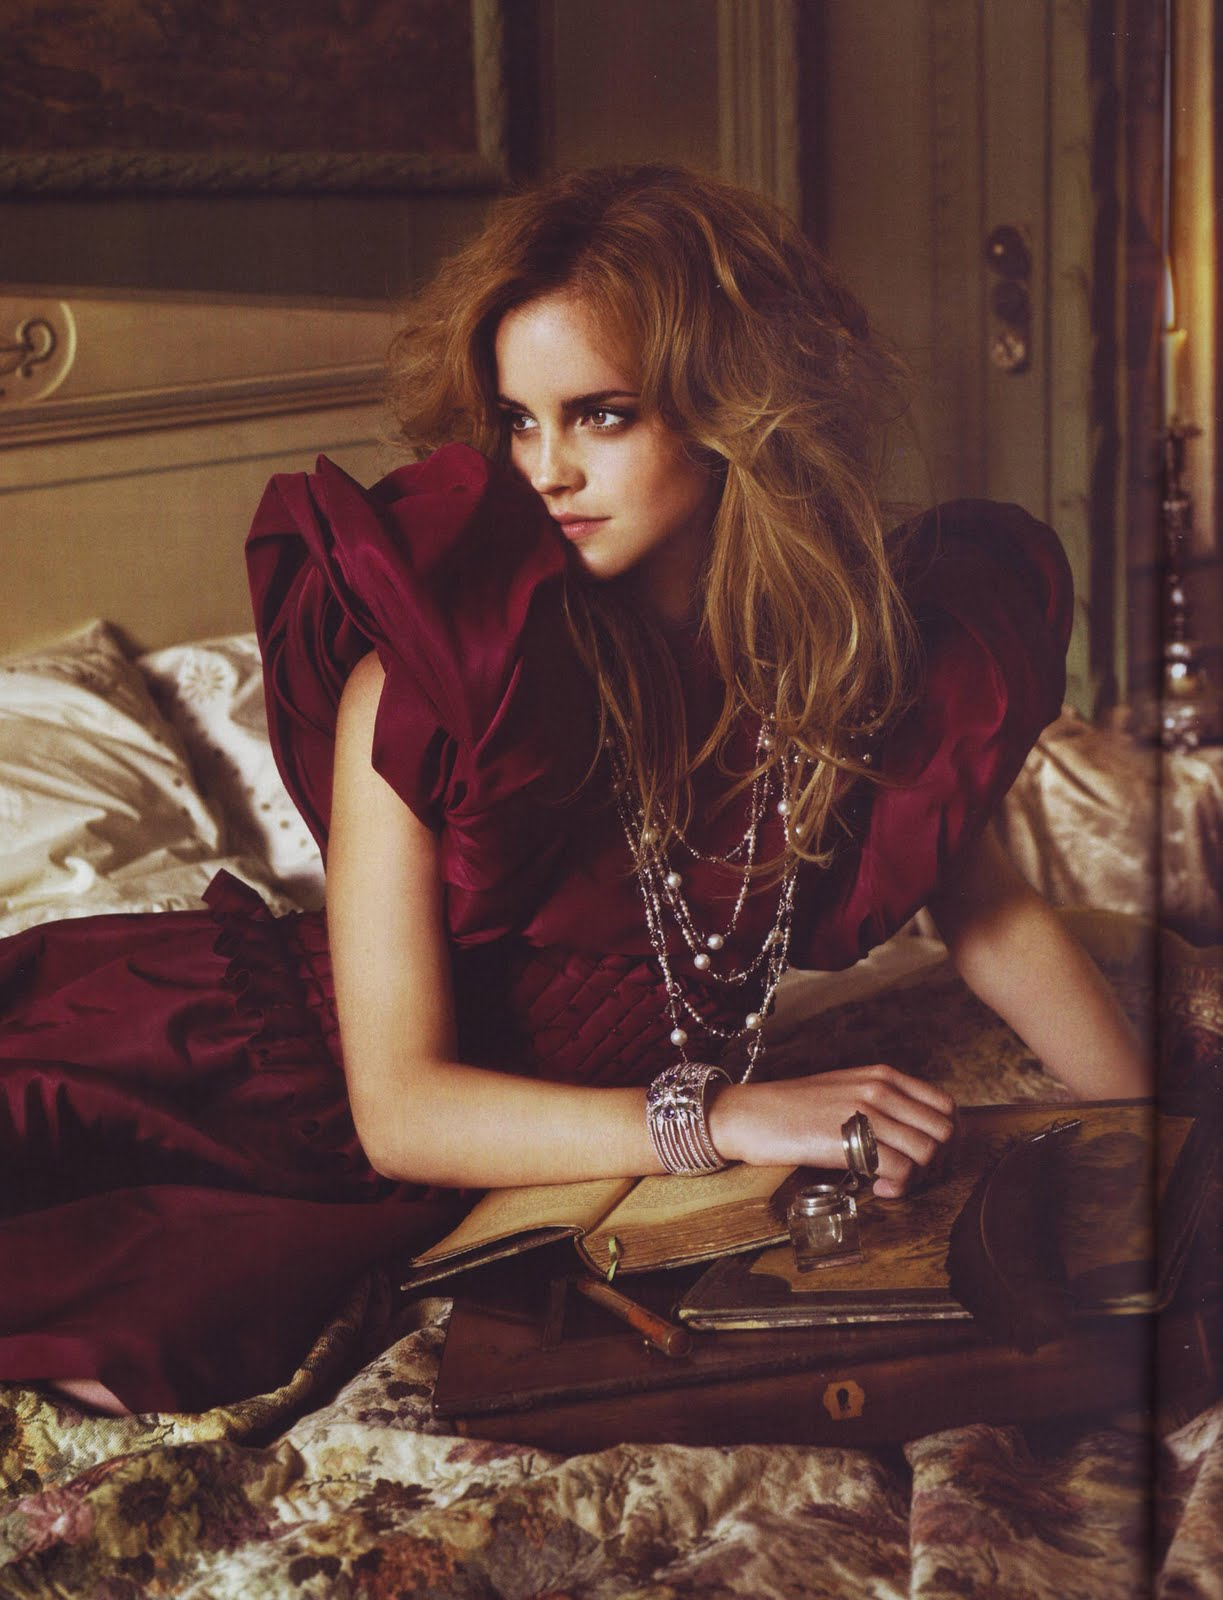 emma-watson-vogue-italia-september-2008-10-the-fashion-prophet